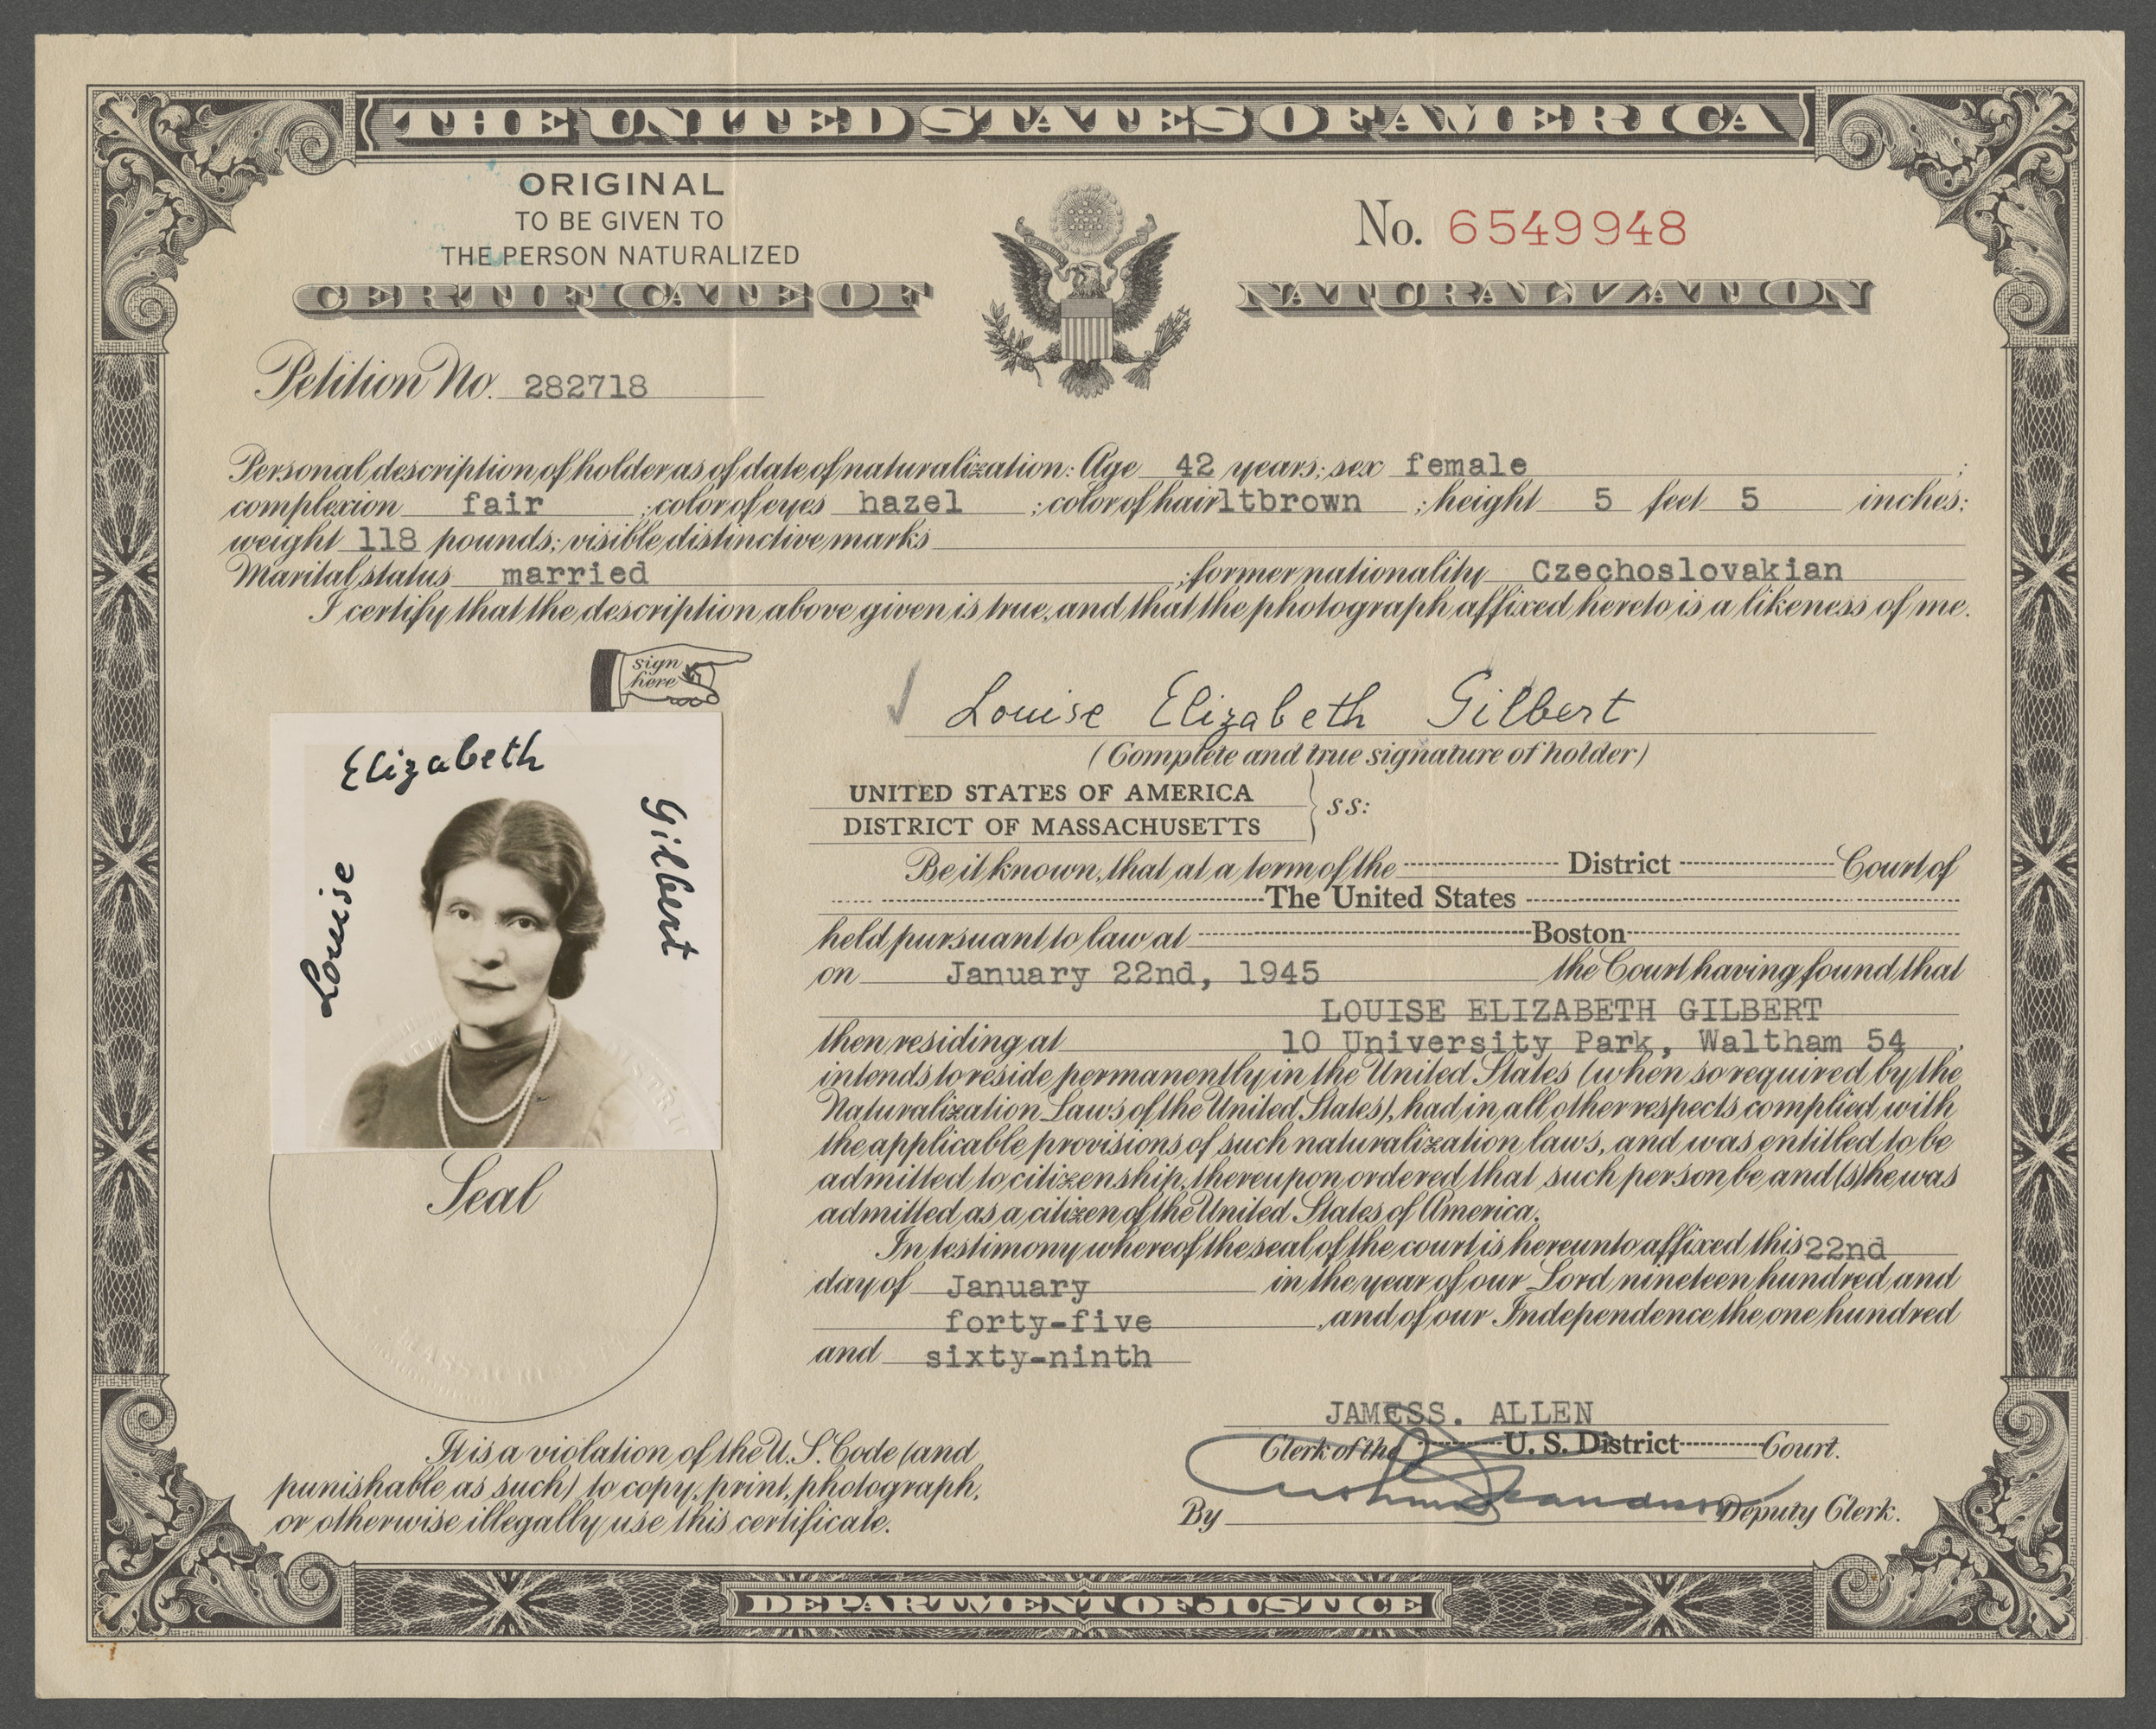 Certificate of Naturalization issued to Louise Elizabeth Gilbert (previously Goldschmied).